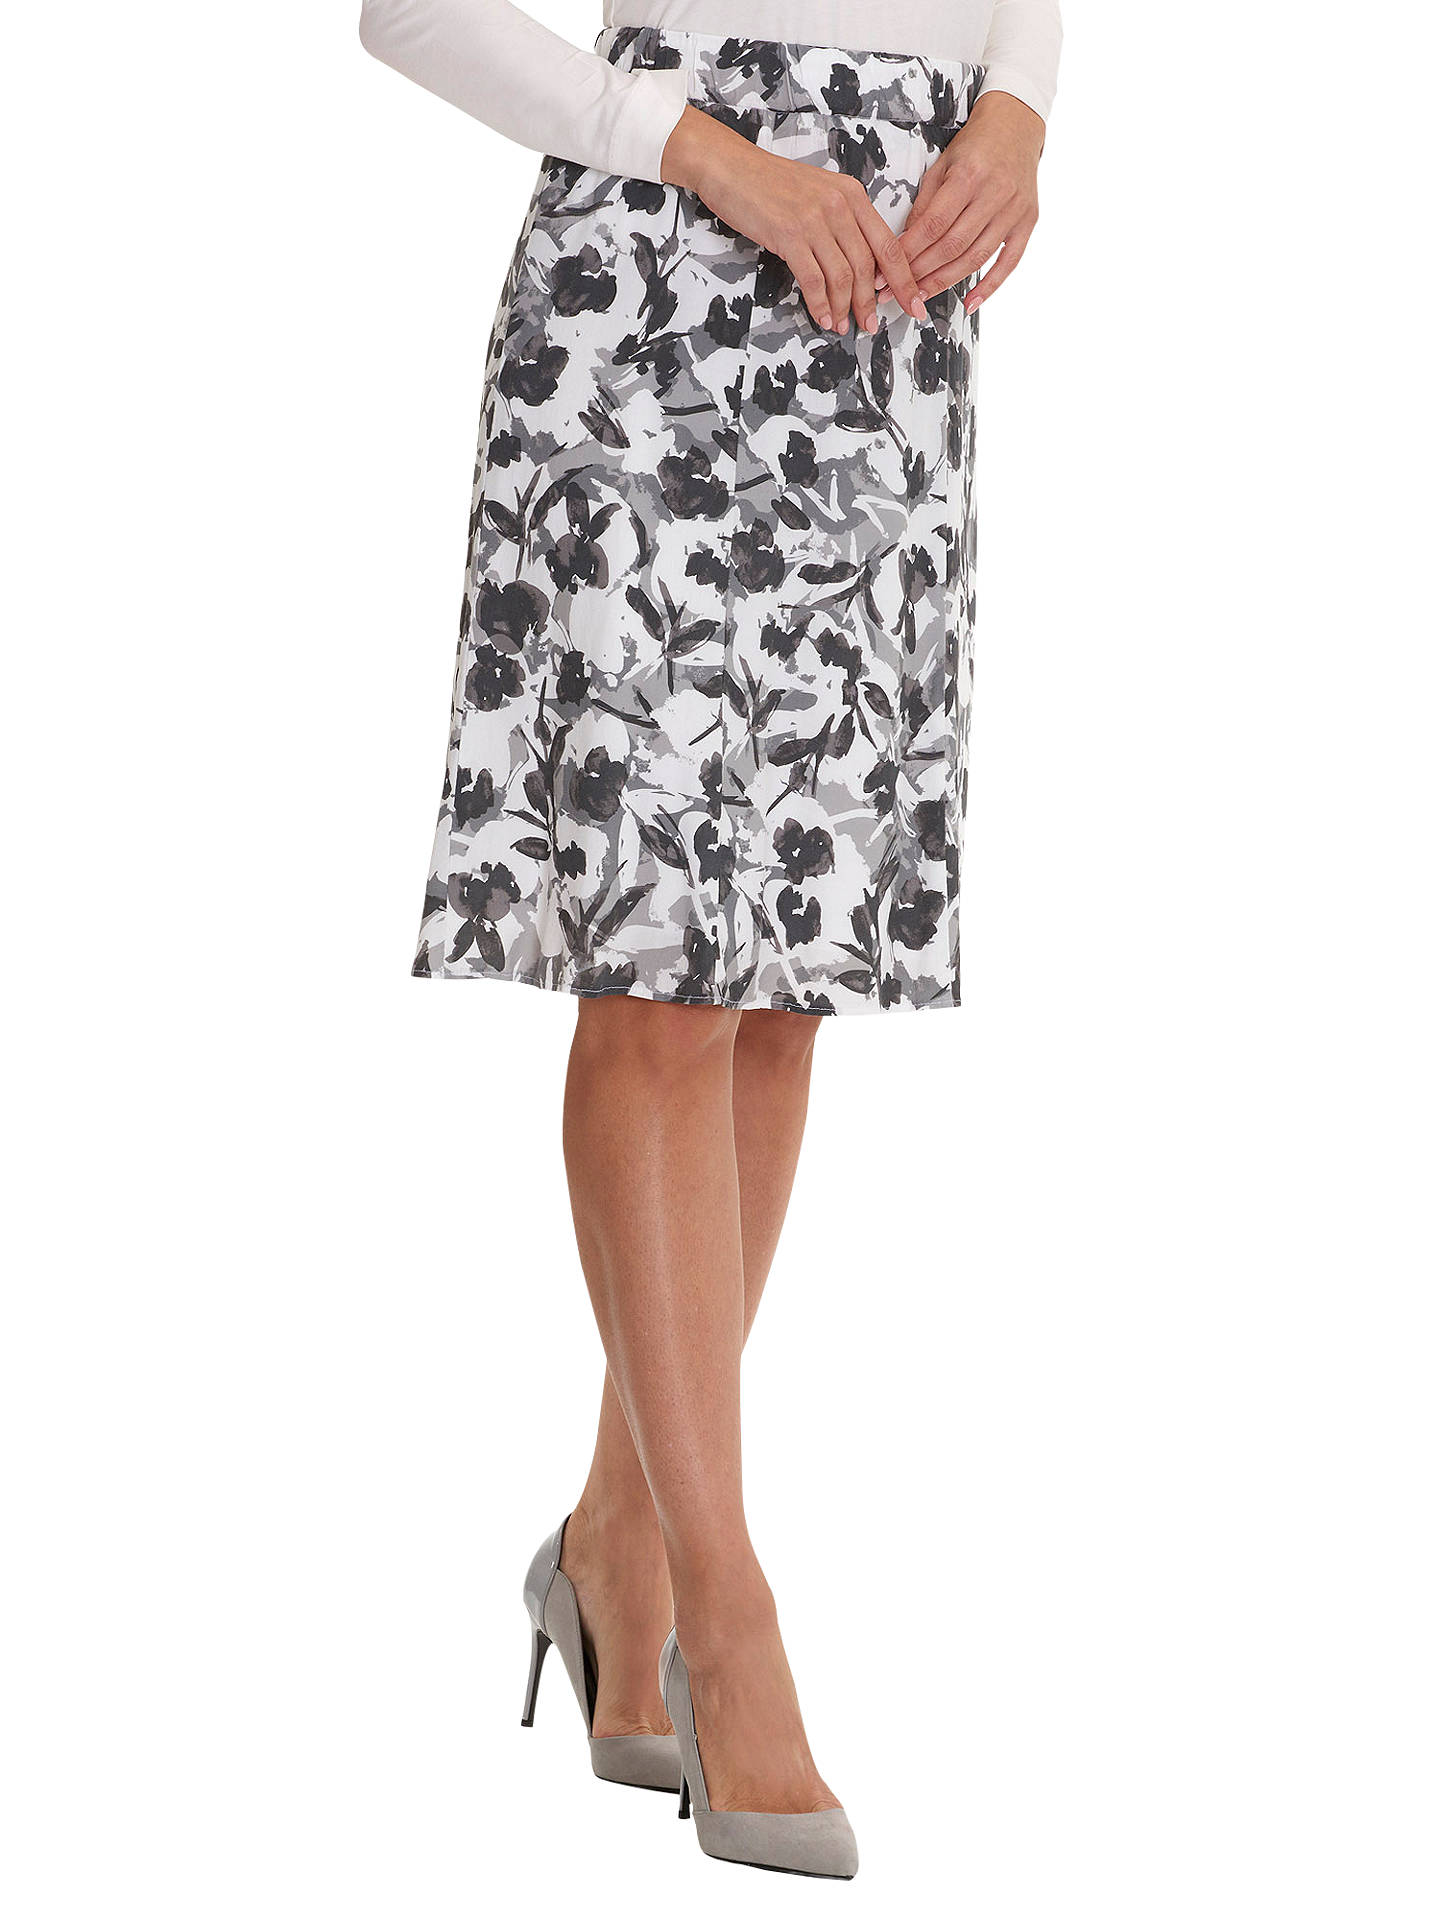 BuyBetty Barclay Printed Midi Skirt, White/Grey, 10 Online at johnlewis.com